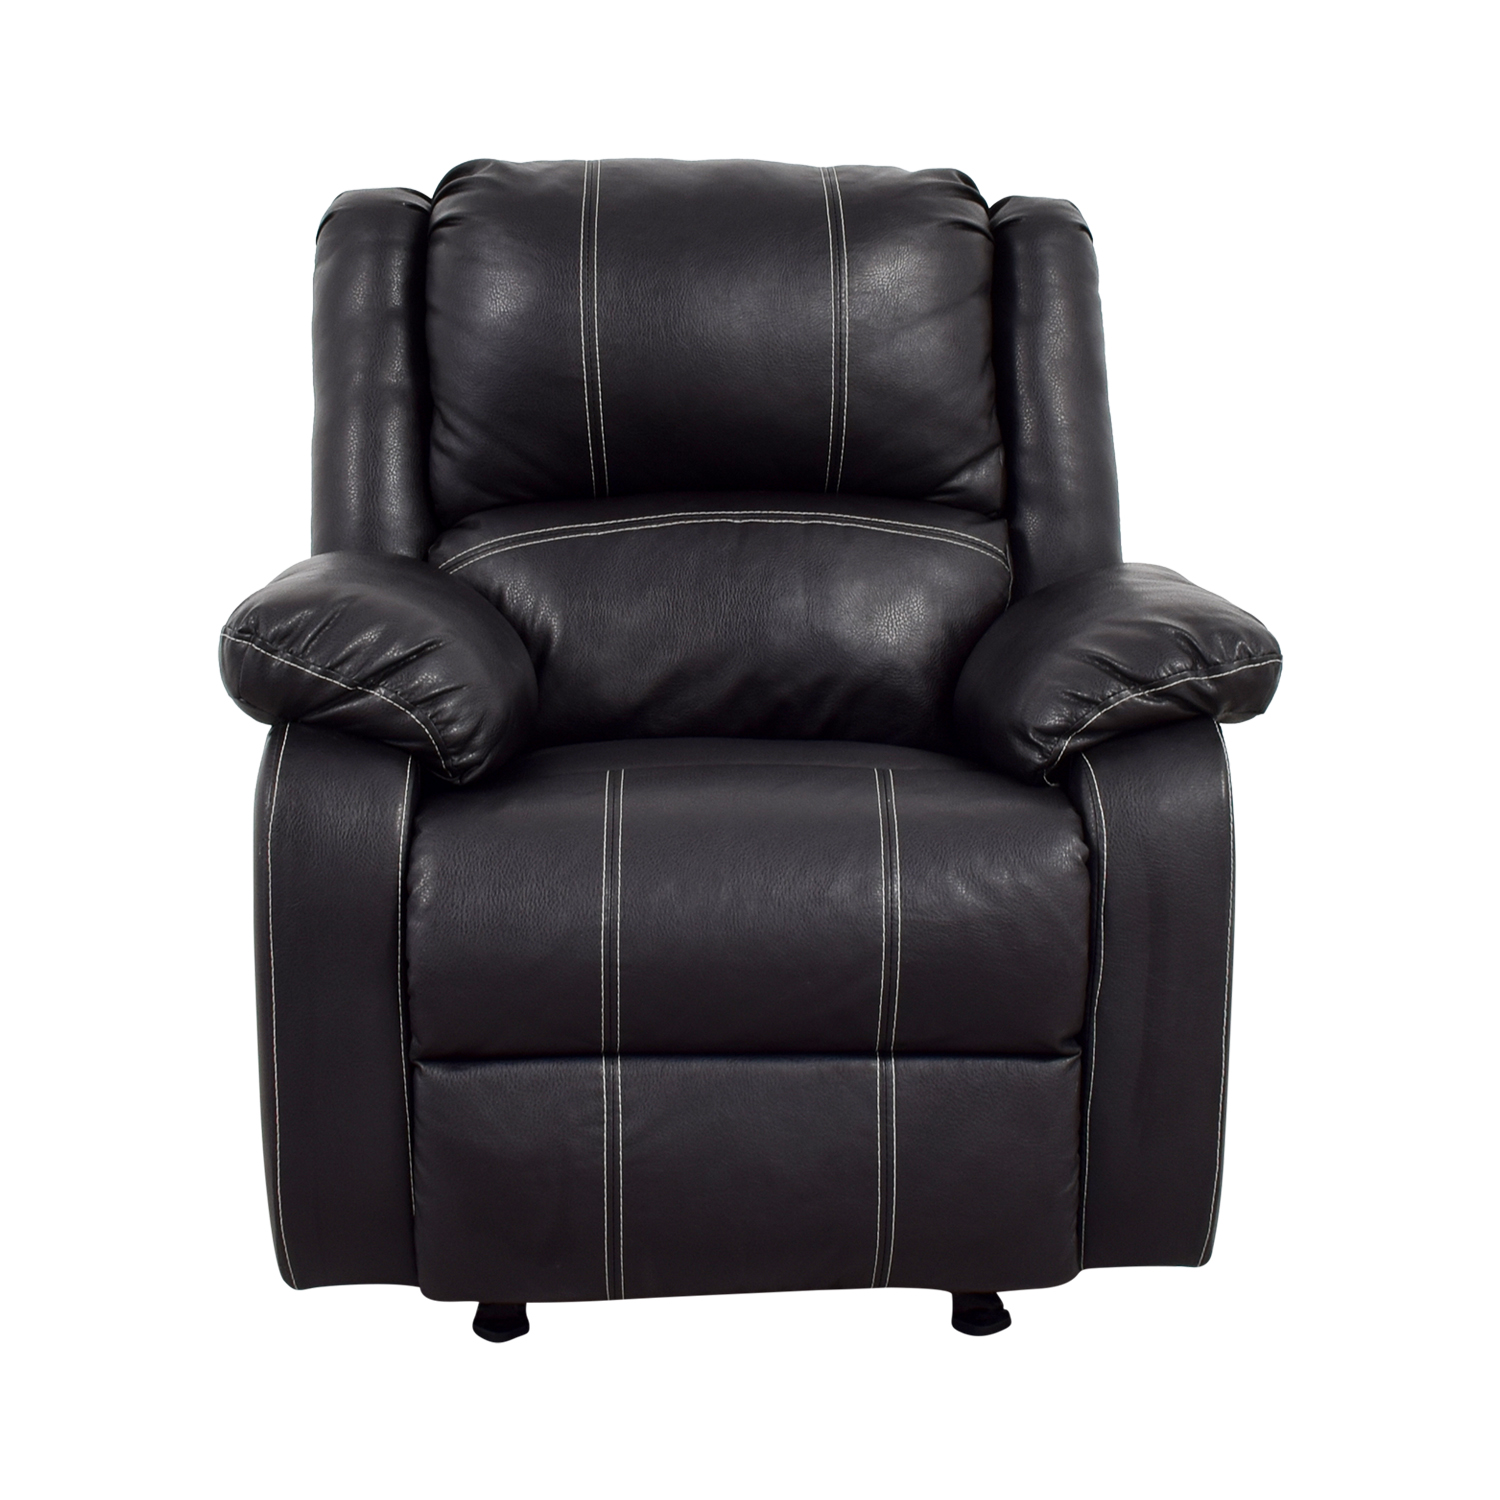 Acme Black Leather Recliner Acme